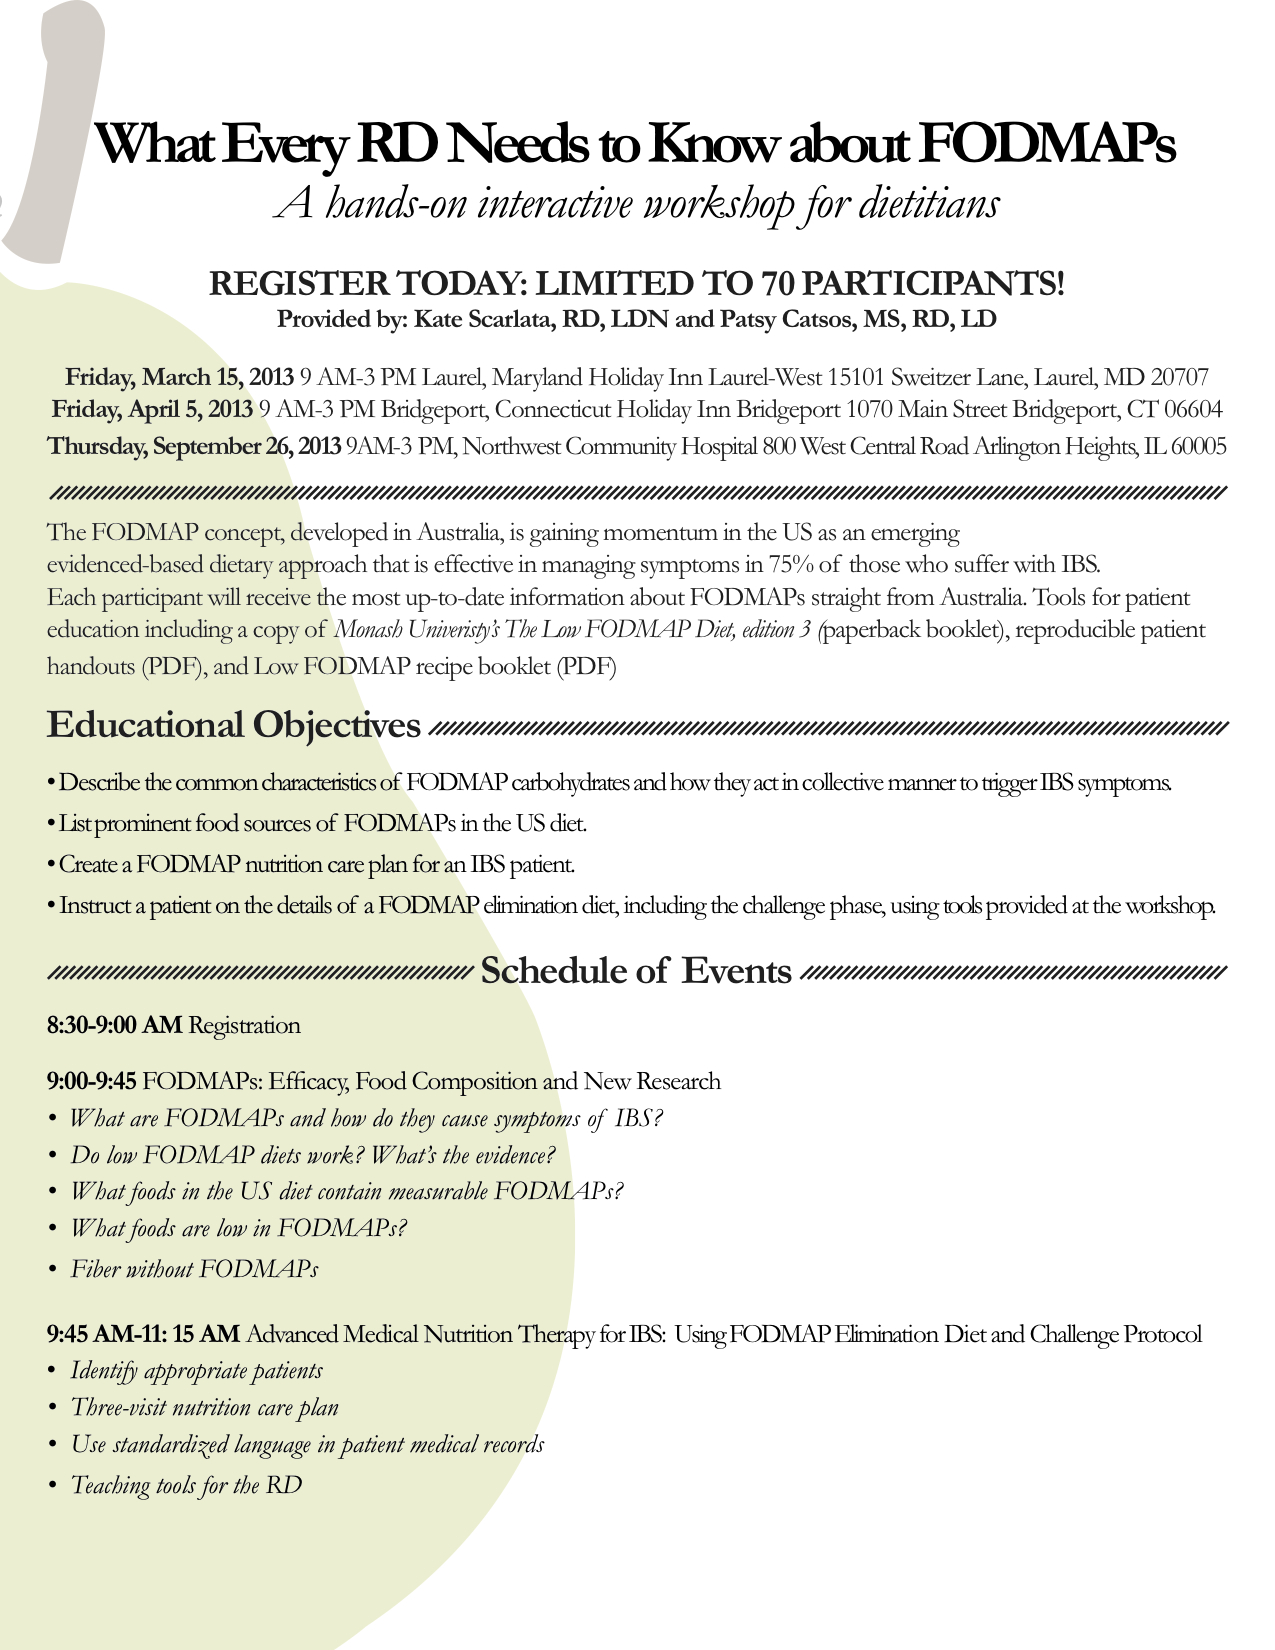 REGISTRATION_FORM 3 final